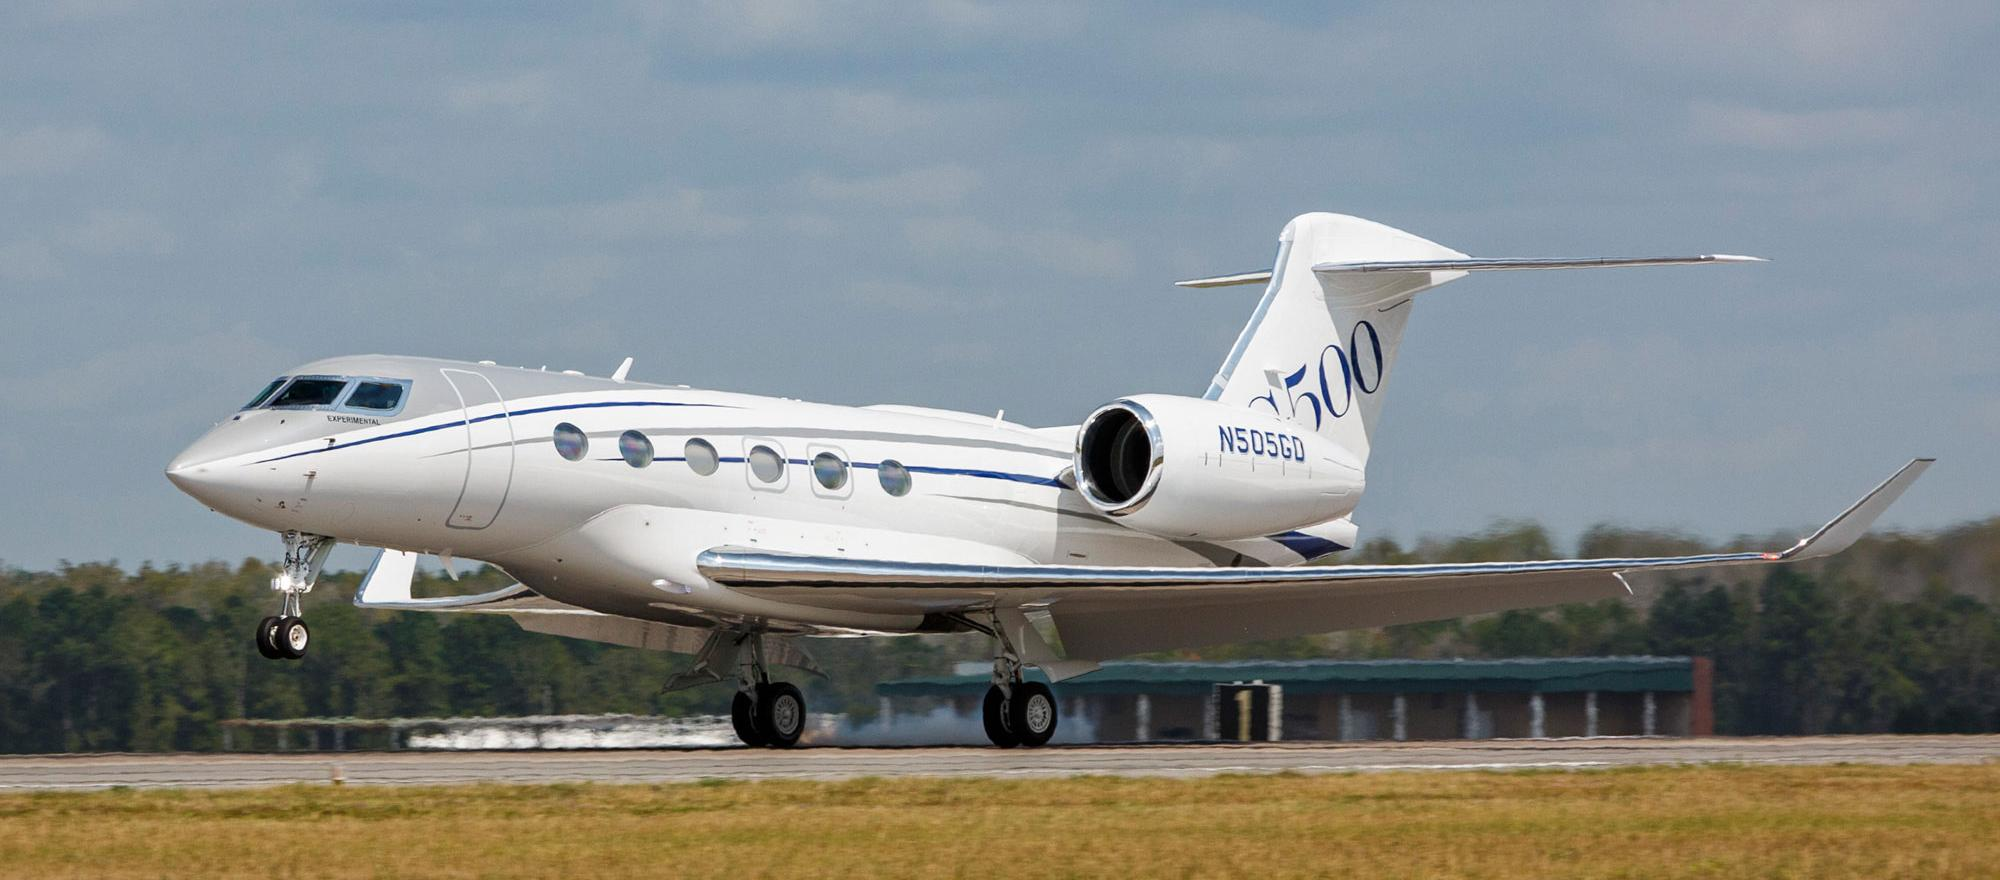 G500 has a clean cabin design from the large oval cabin windows to the slick wing with an aggressive 36-degree sweep.